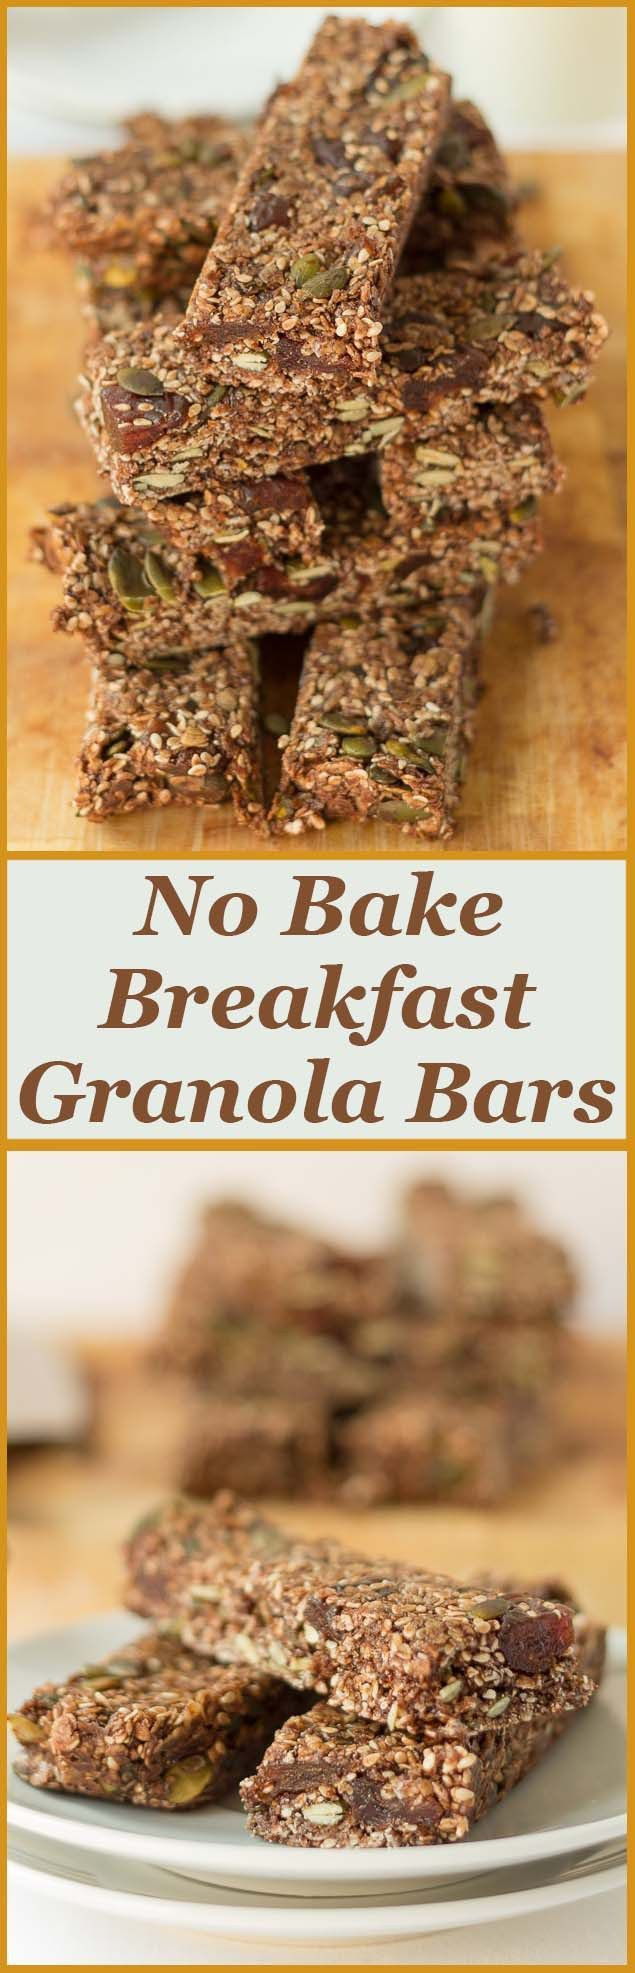 No bake breakfast granola bars, low calorie, nut free, easy to make, full of healthy natural goodness with a fantastic light chocolate taste as well. #healthy